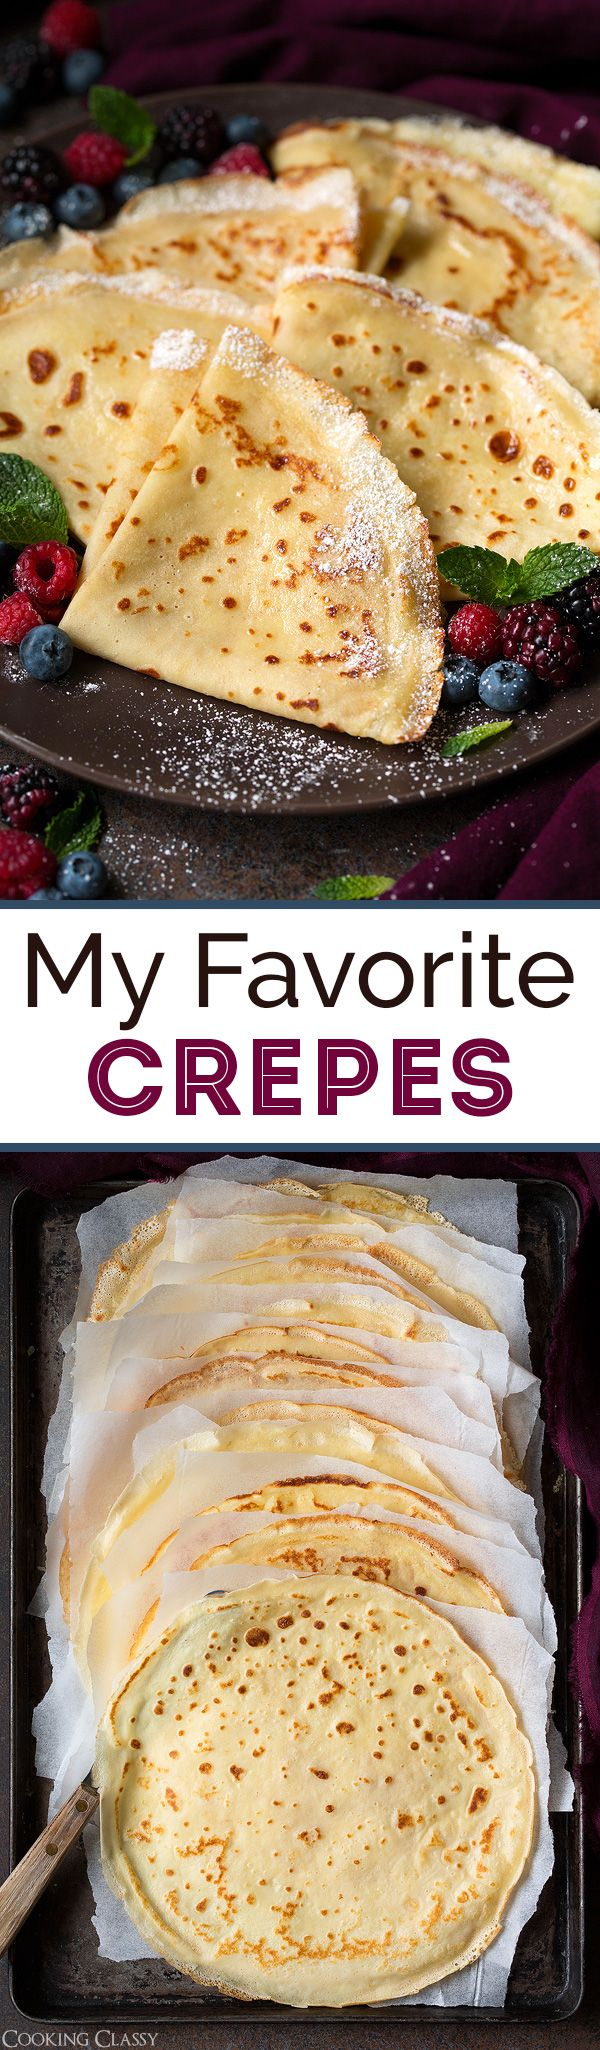 Crepes - Cooking Classy